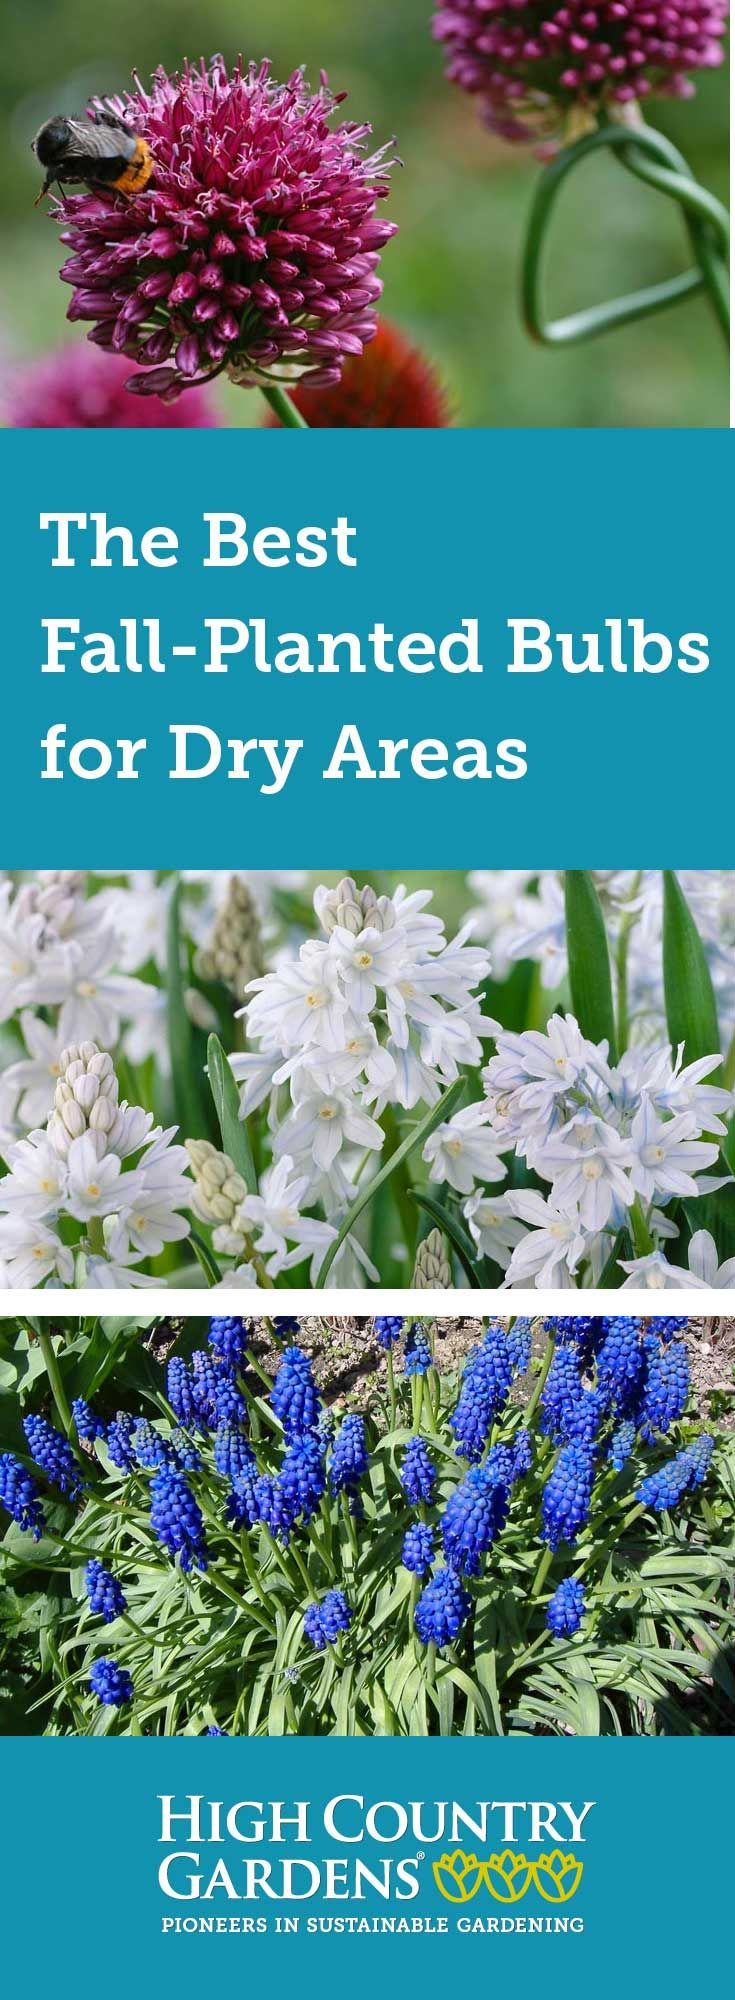 Best fallplanted bulbs for dry areas high country